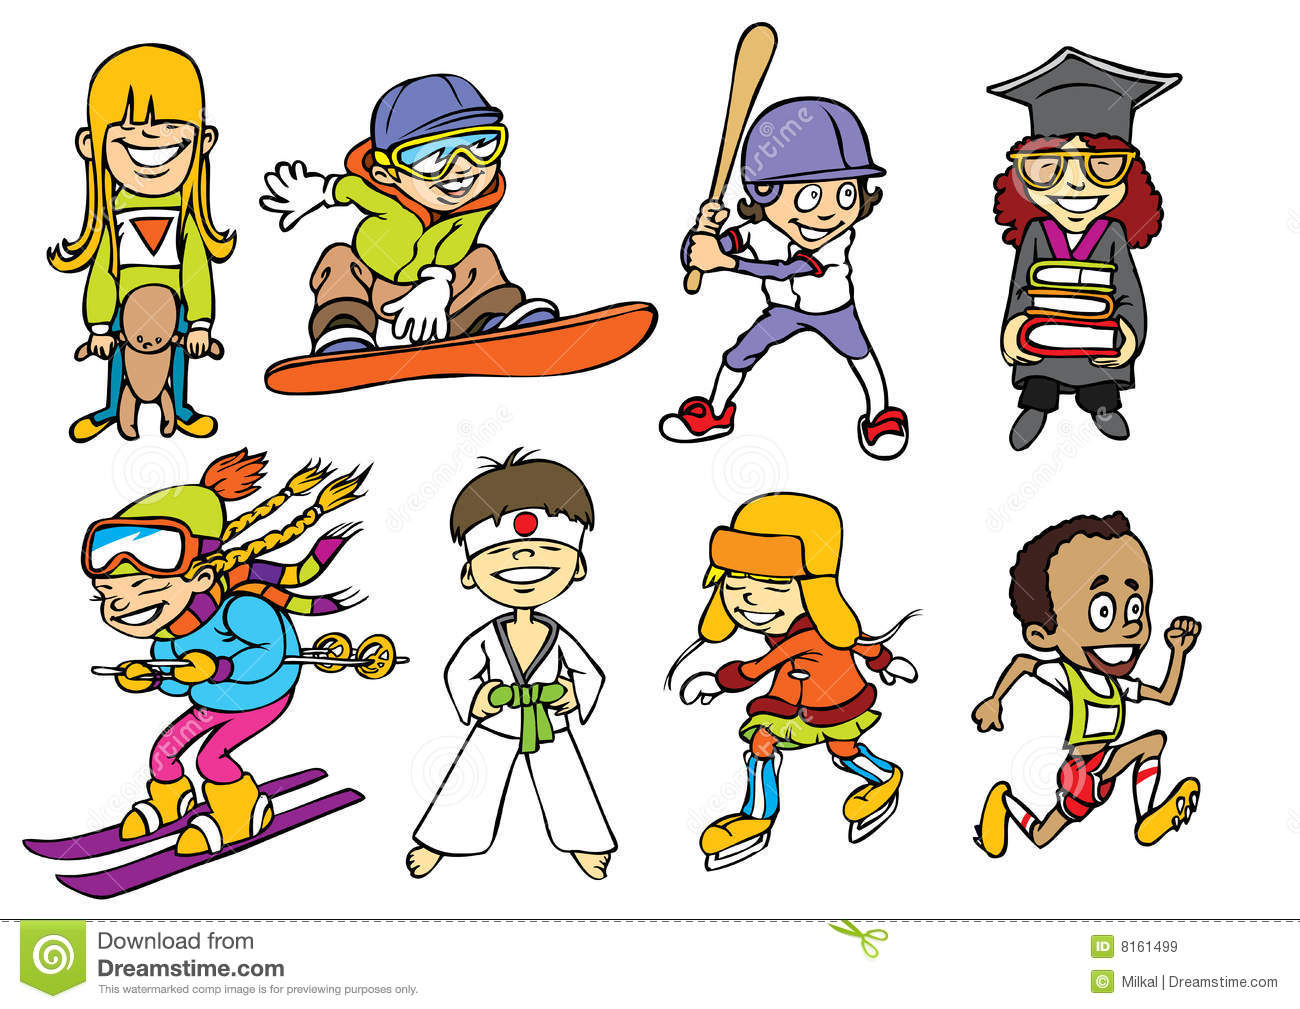 fun sport kids - Sports Images For Kids